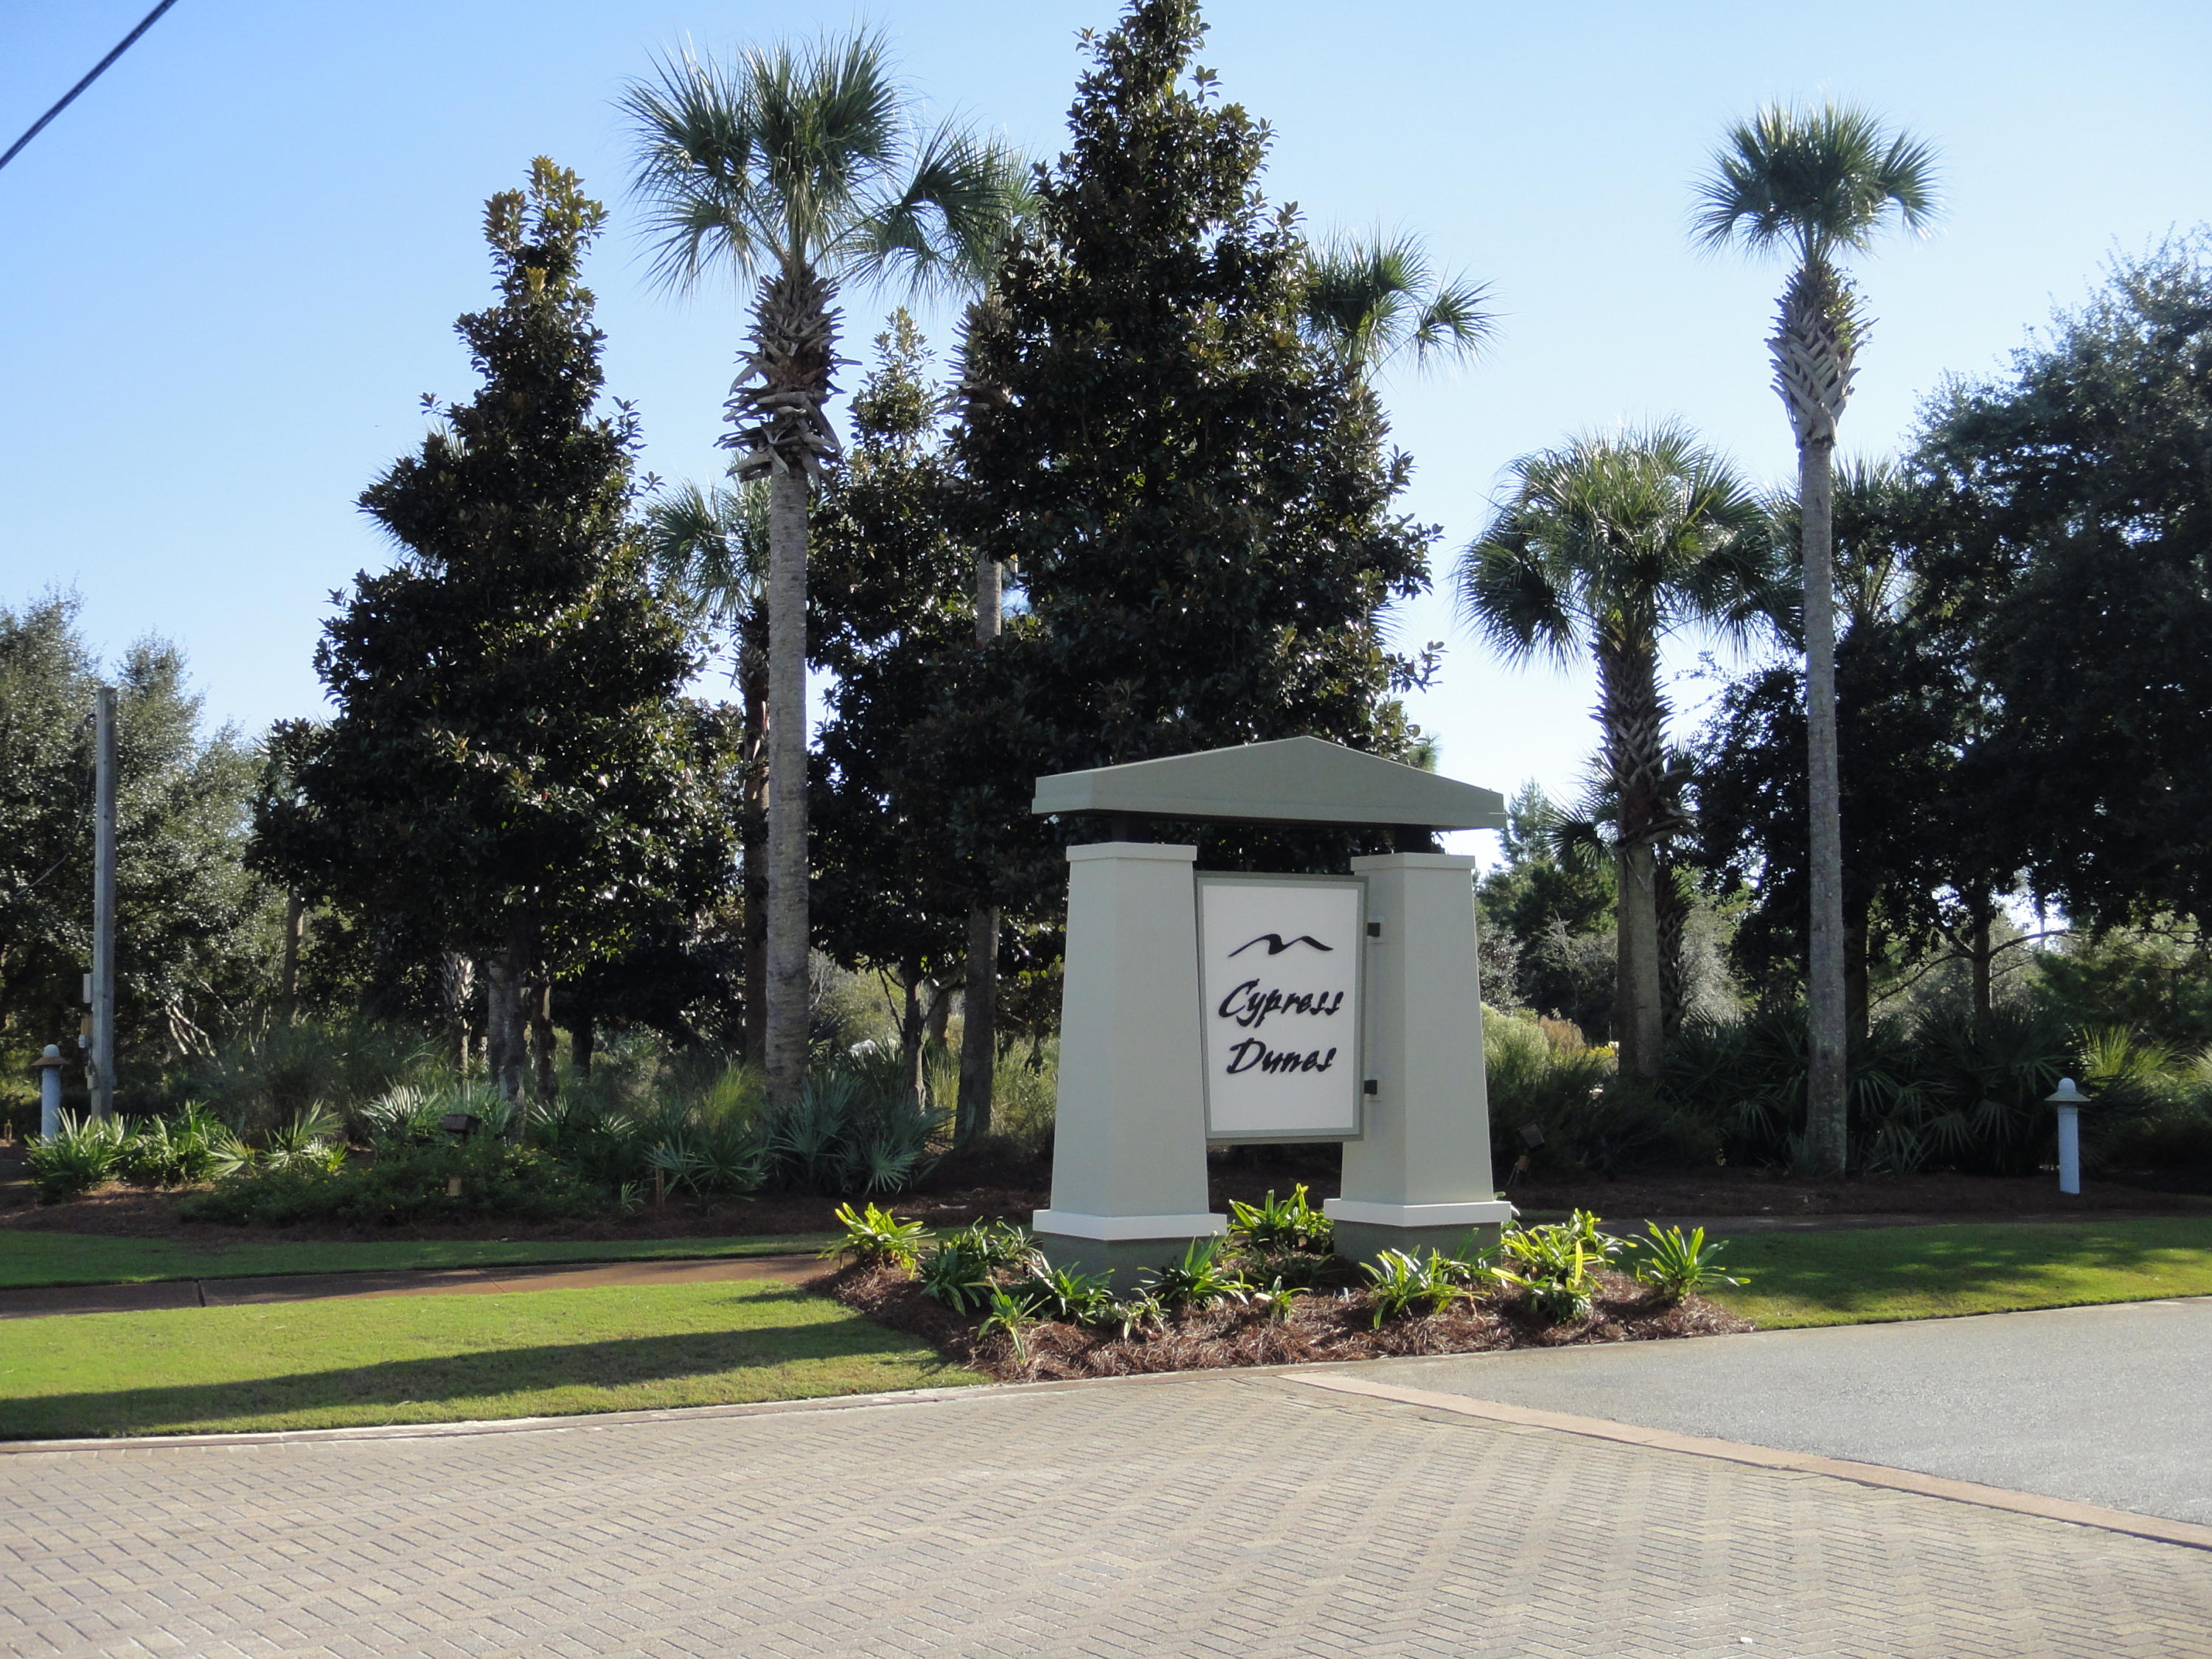 Cypress Dunes front sign